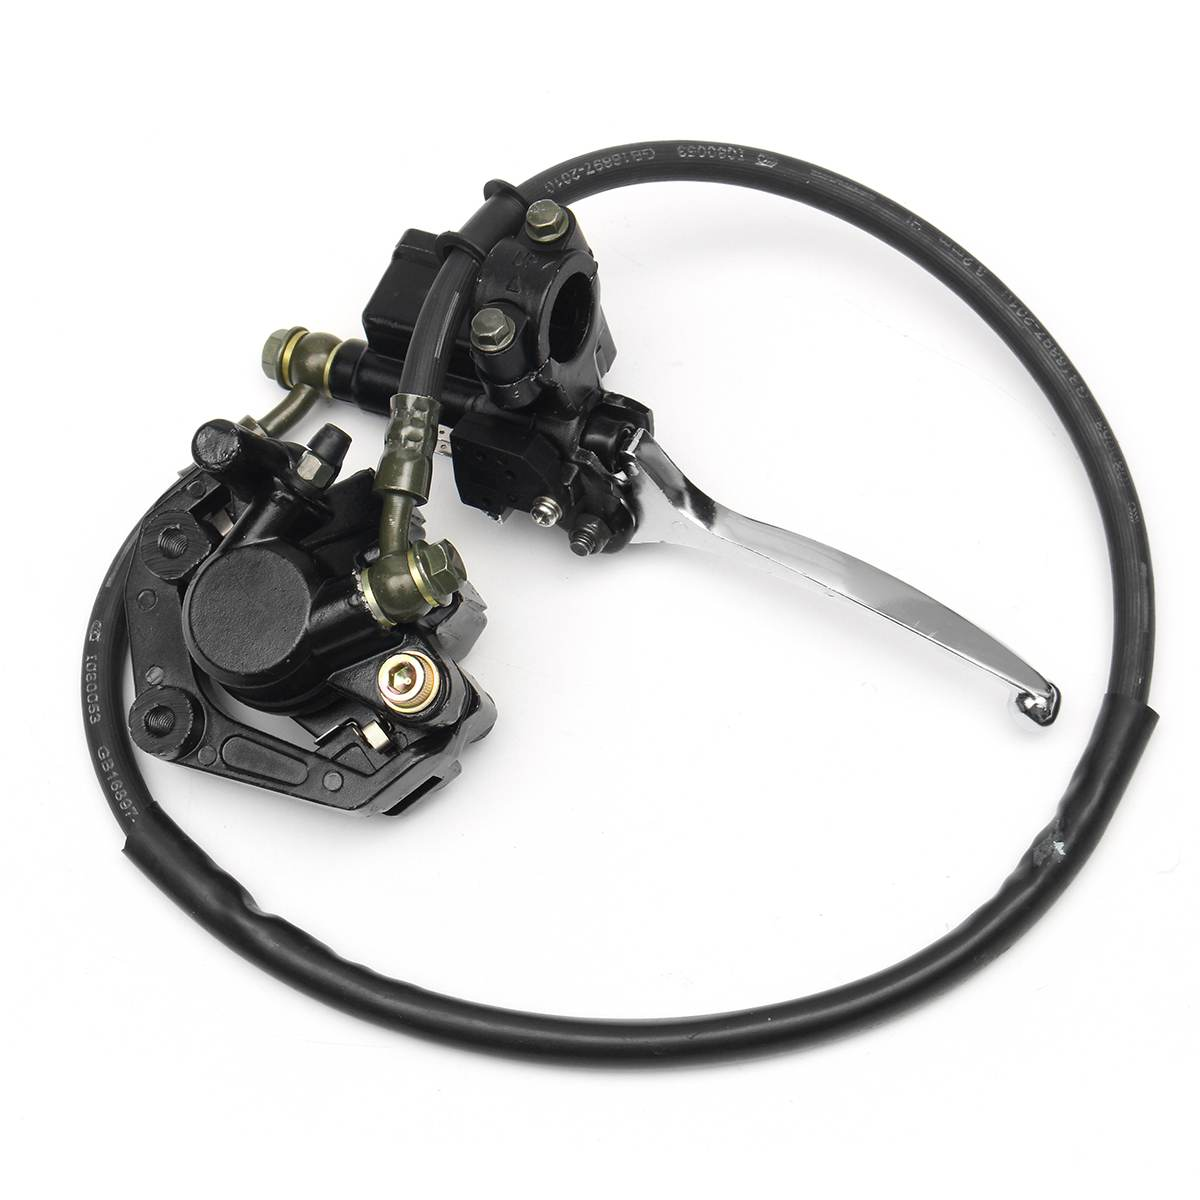 Hydraulic-Caliper-Brake-Assembly Bikes 125cc Dirt-Pit Universal Motorcycle 70cc 50cc title=